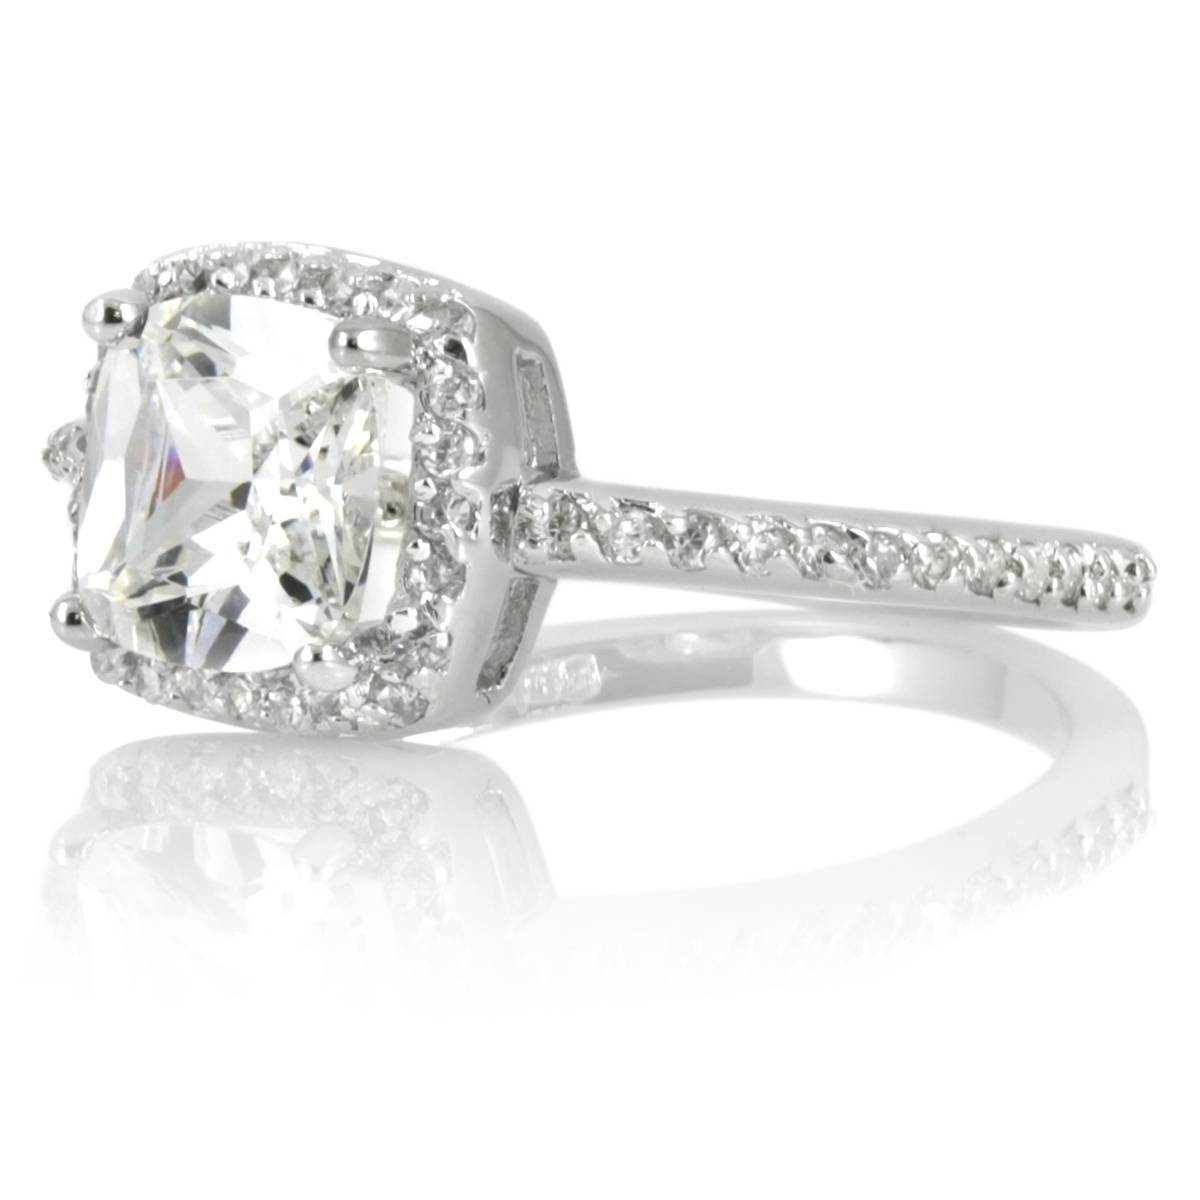 Cz Halo Cushion Cut Engagement Ring With Regard To Wedding Rings Without Nickel (View 4 of 15)